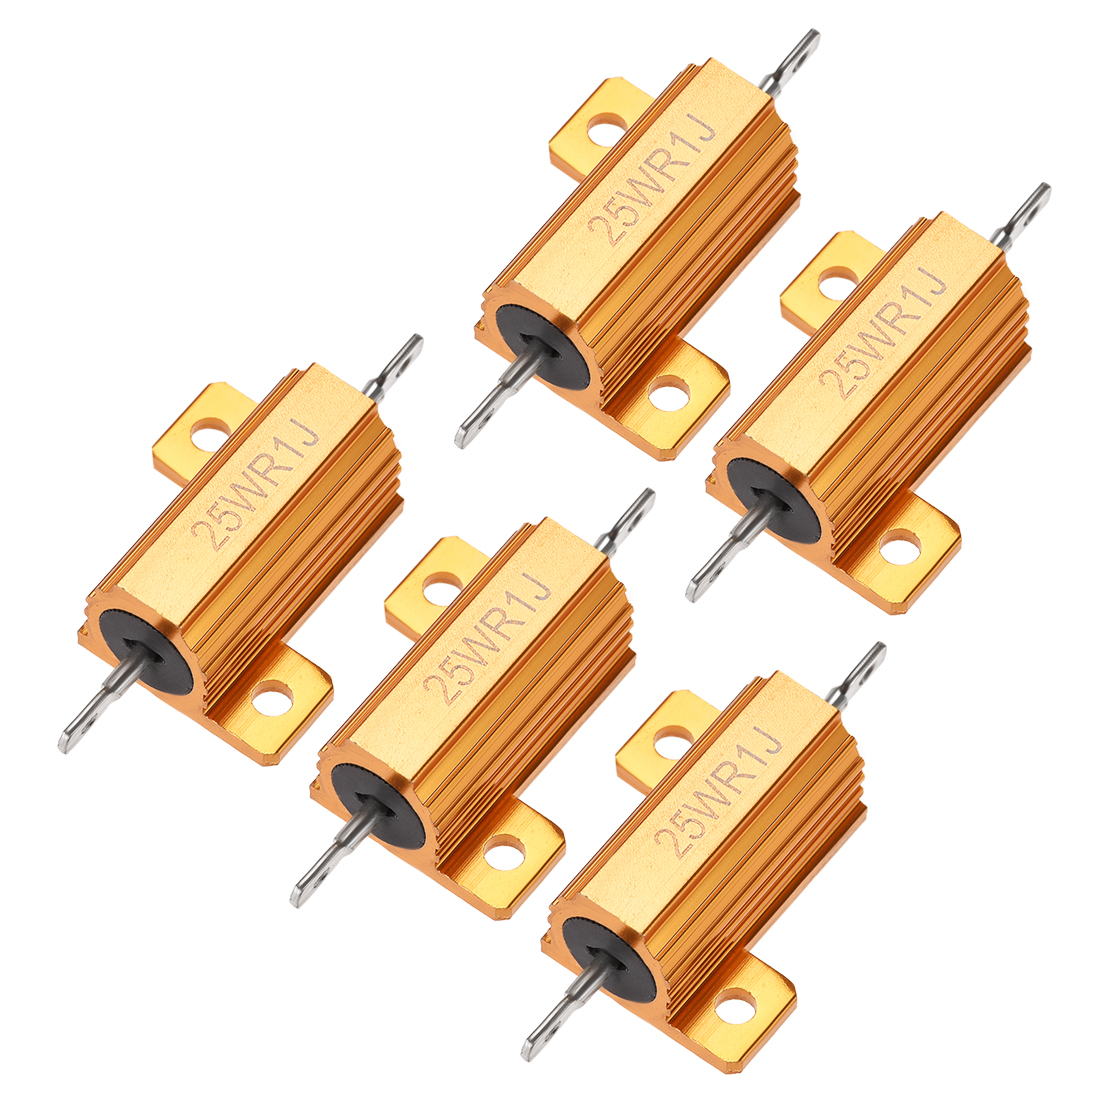 25W 0.1 Ohm 5% Aluminum Housing Resistor Wirewound Resistor Gold Tone 5 Pcs